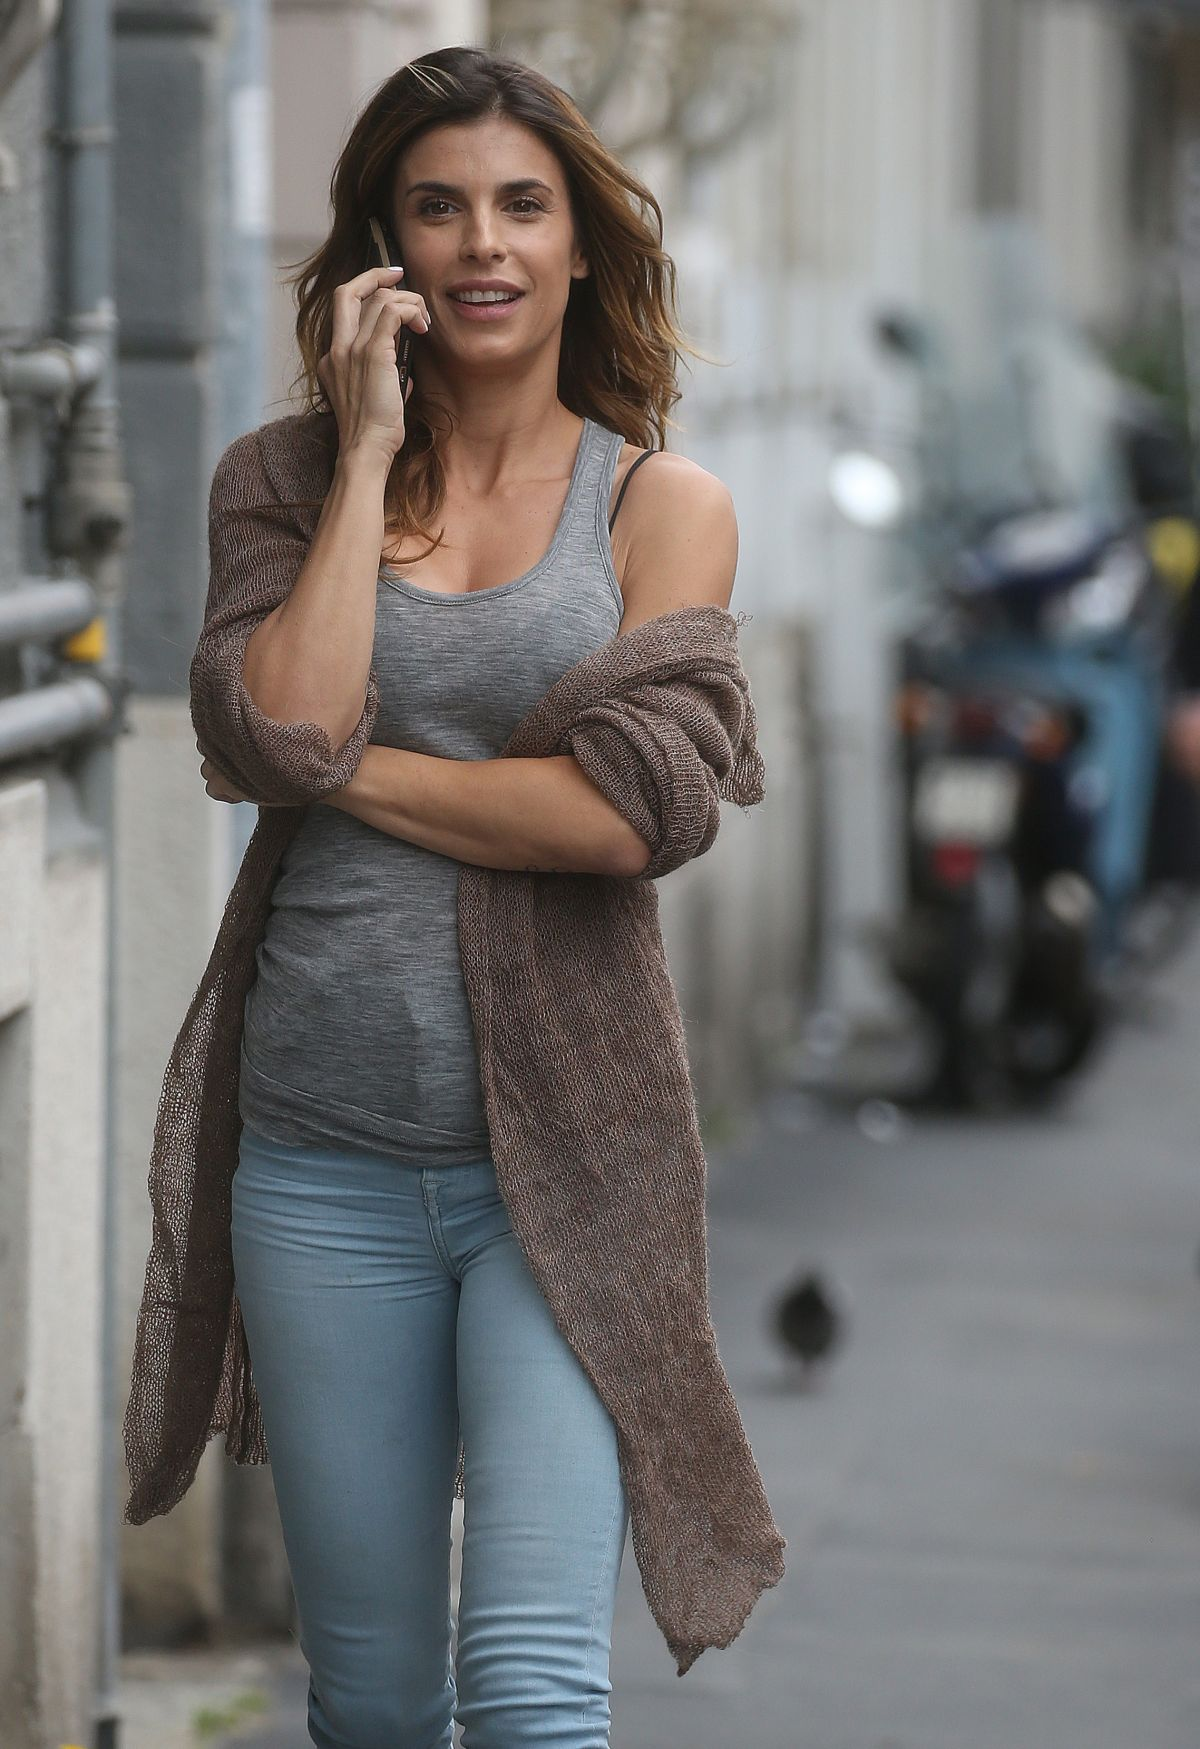 Elisabetta Canalis naked (72 photos), Topless, Is a cute, Twitter, lingerie 2018